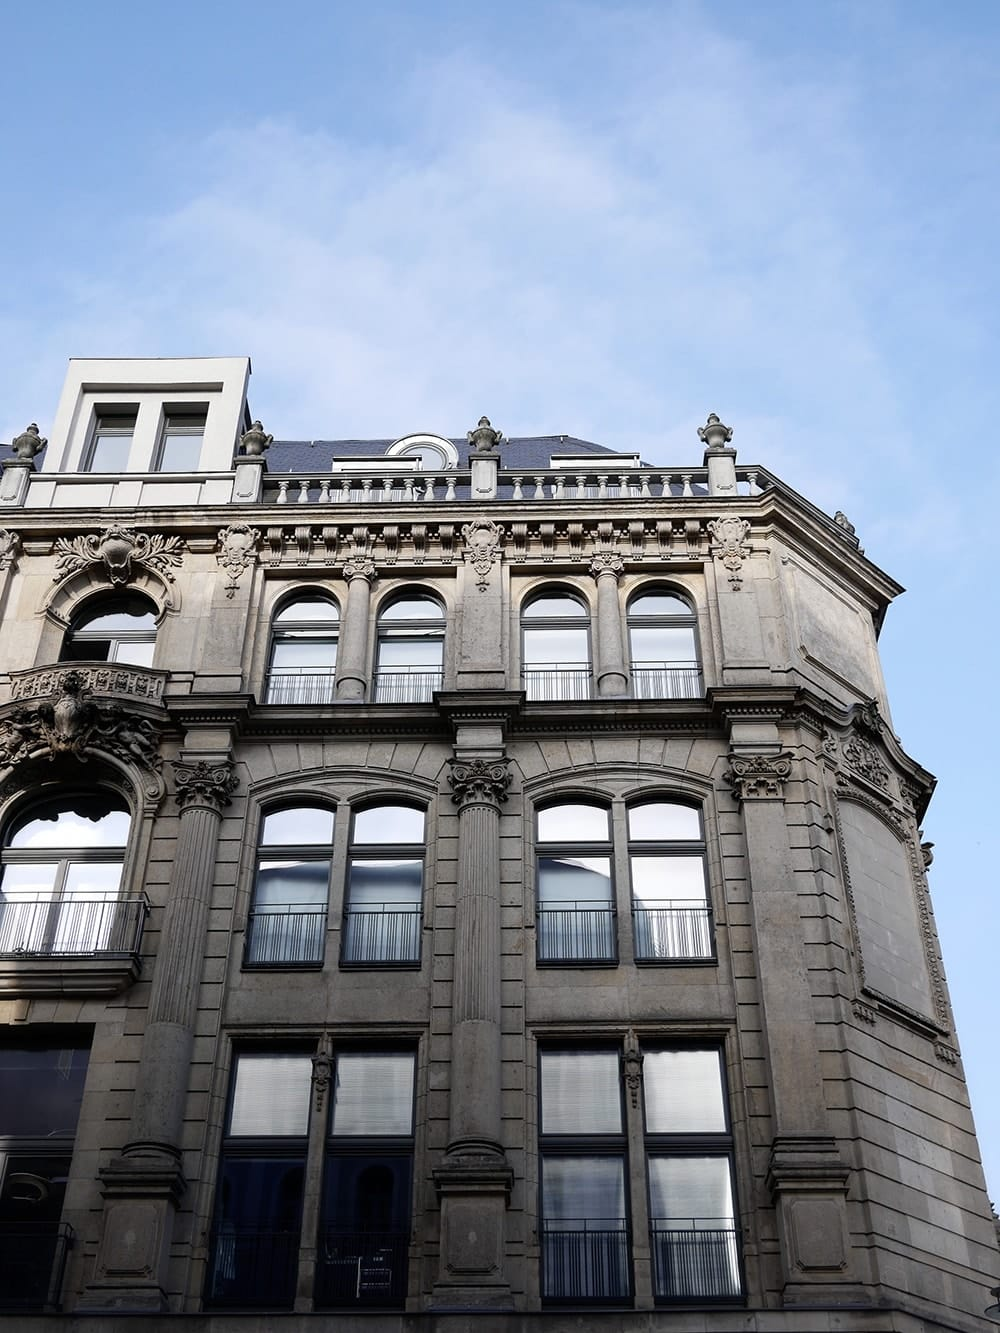 Classical grey facade of old tenement in the city. Berlin